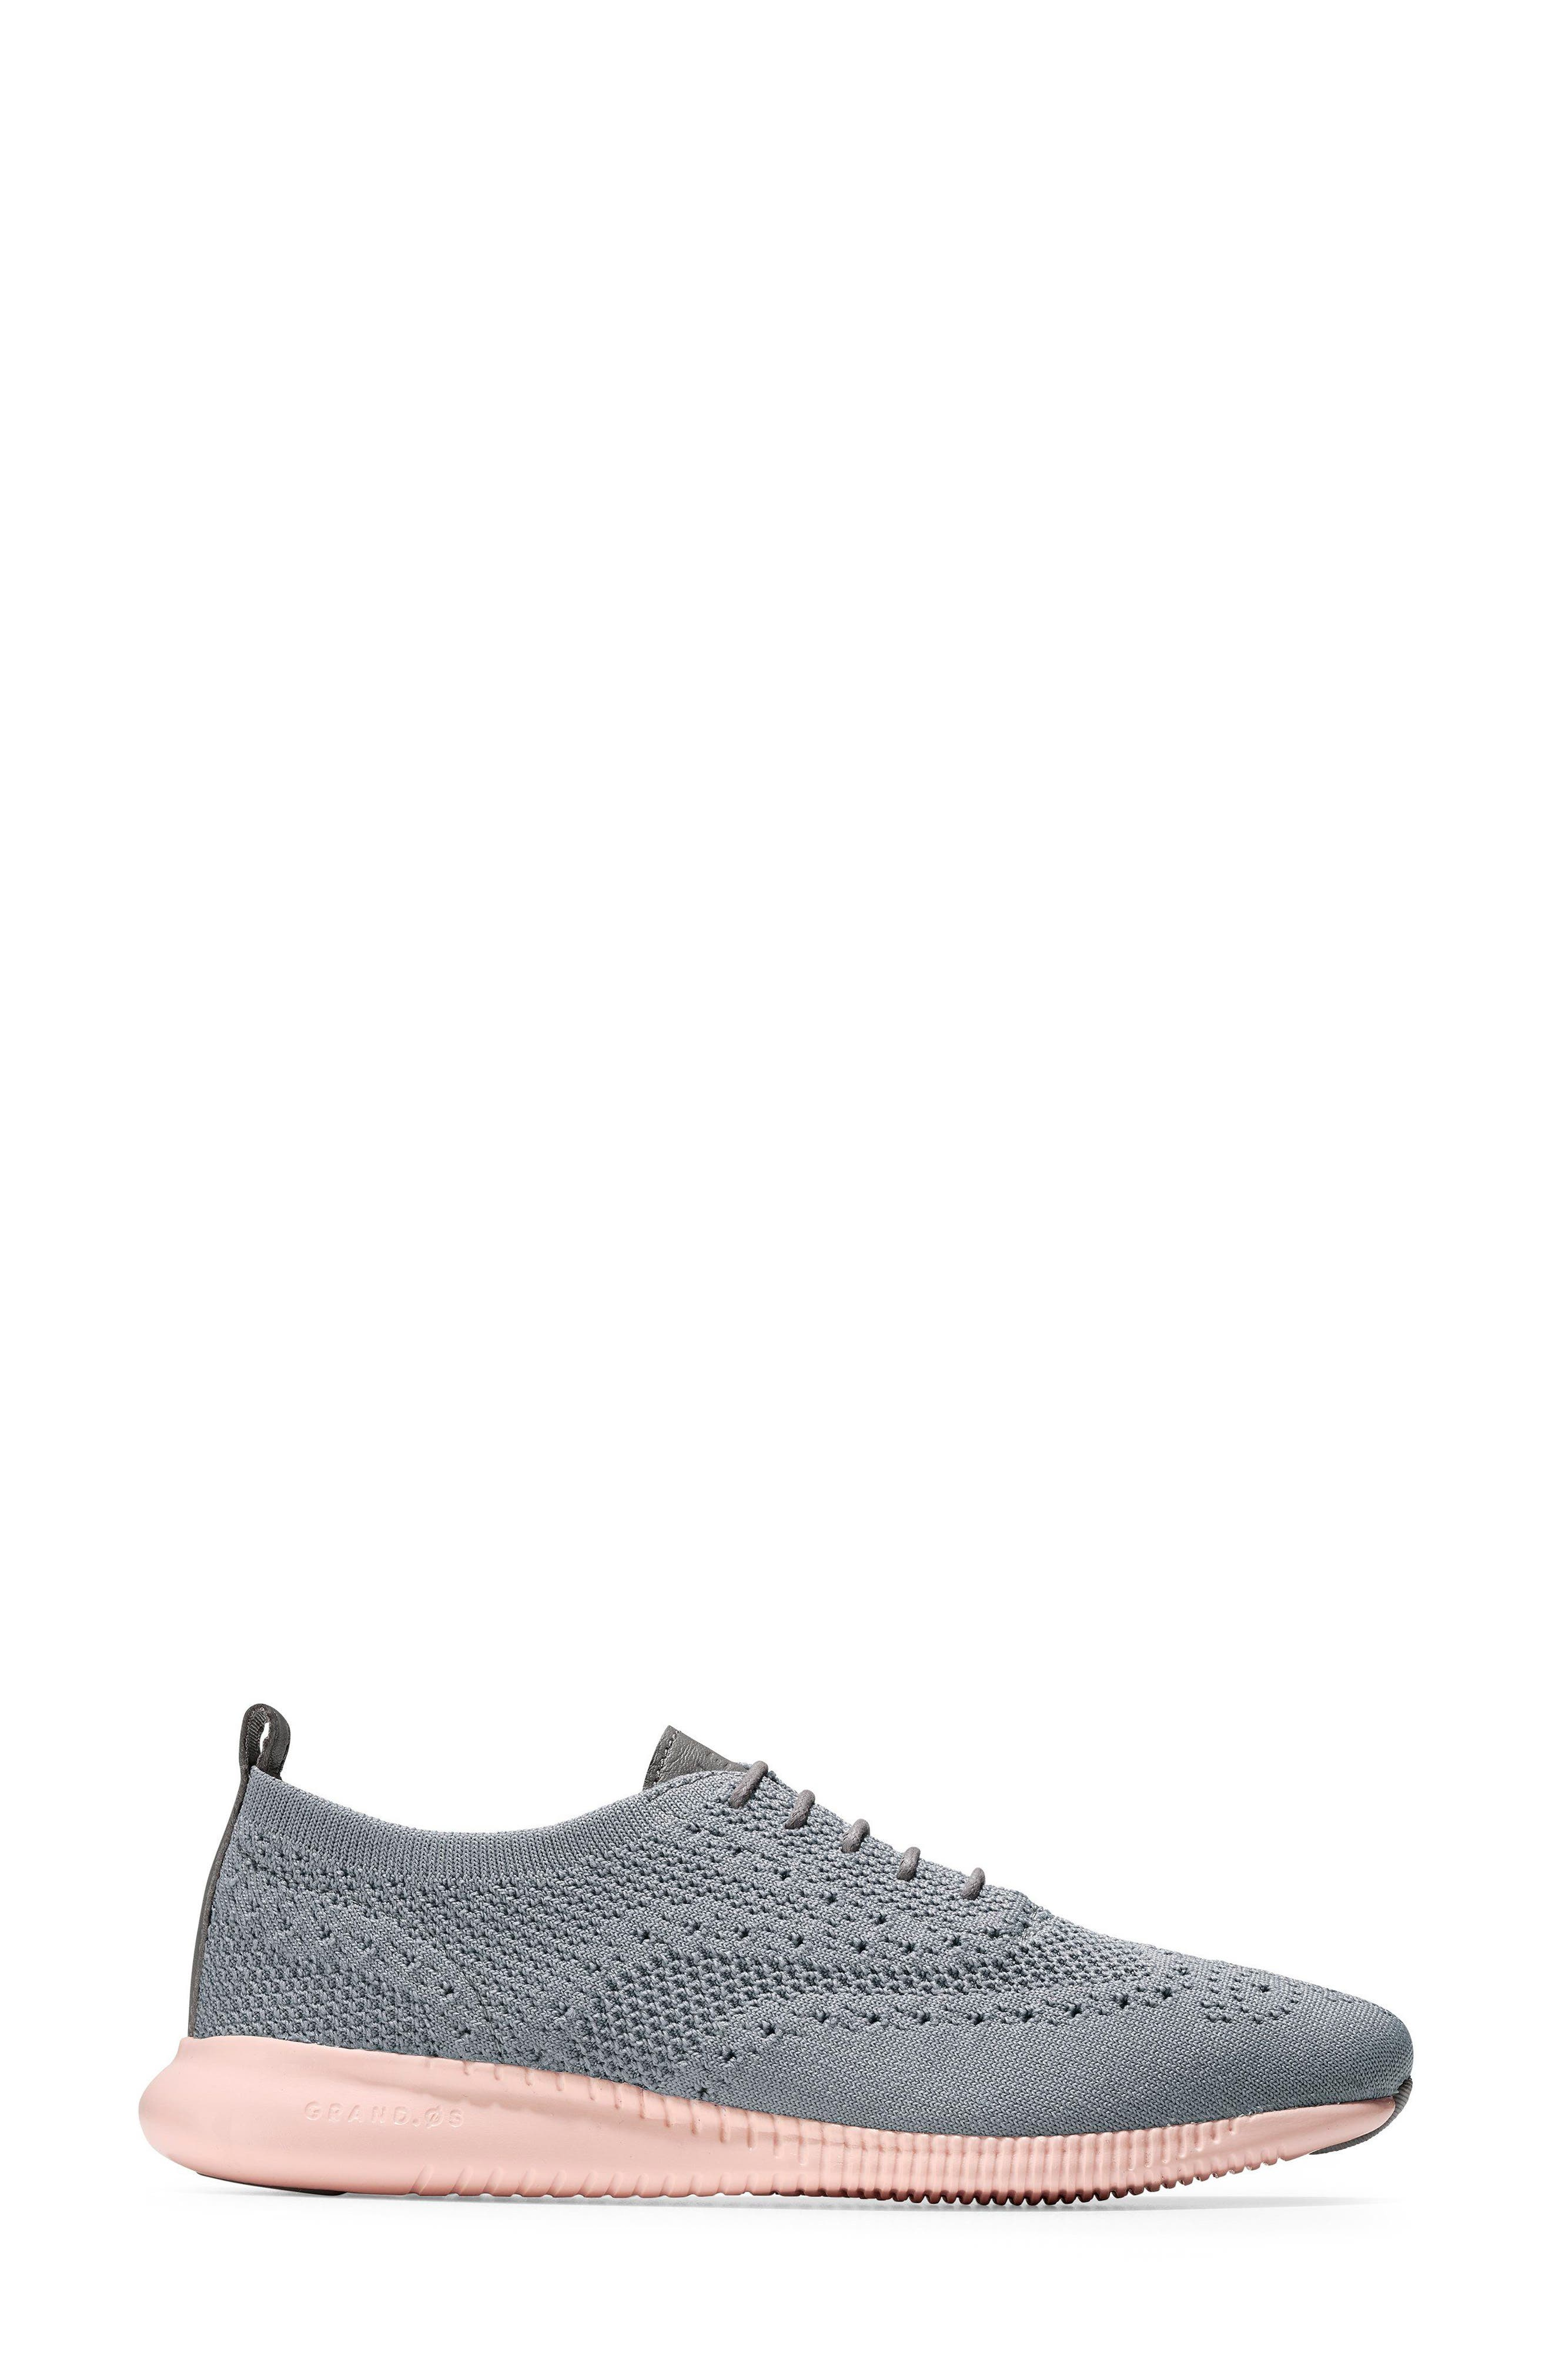 2.ZERØGRAND Stitchlite Wingtip Sneaker,                             Alternate thumbnail 3, color,                             Ironstone Knit Fabric